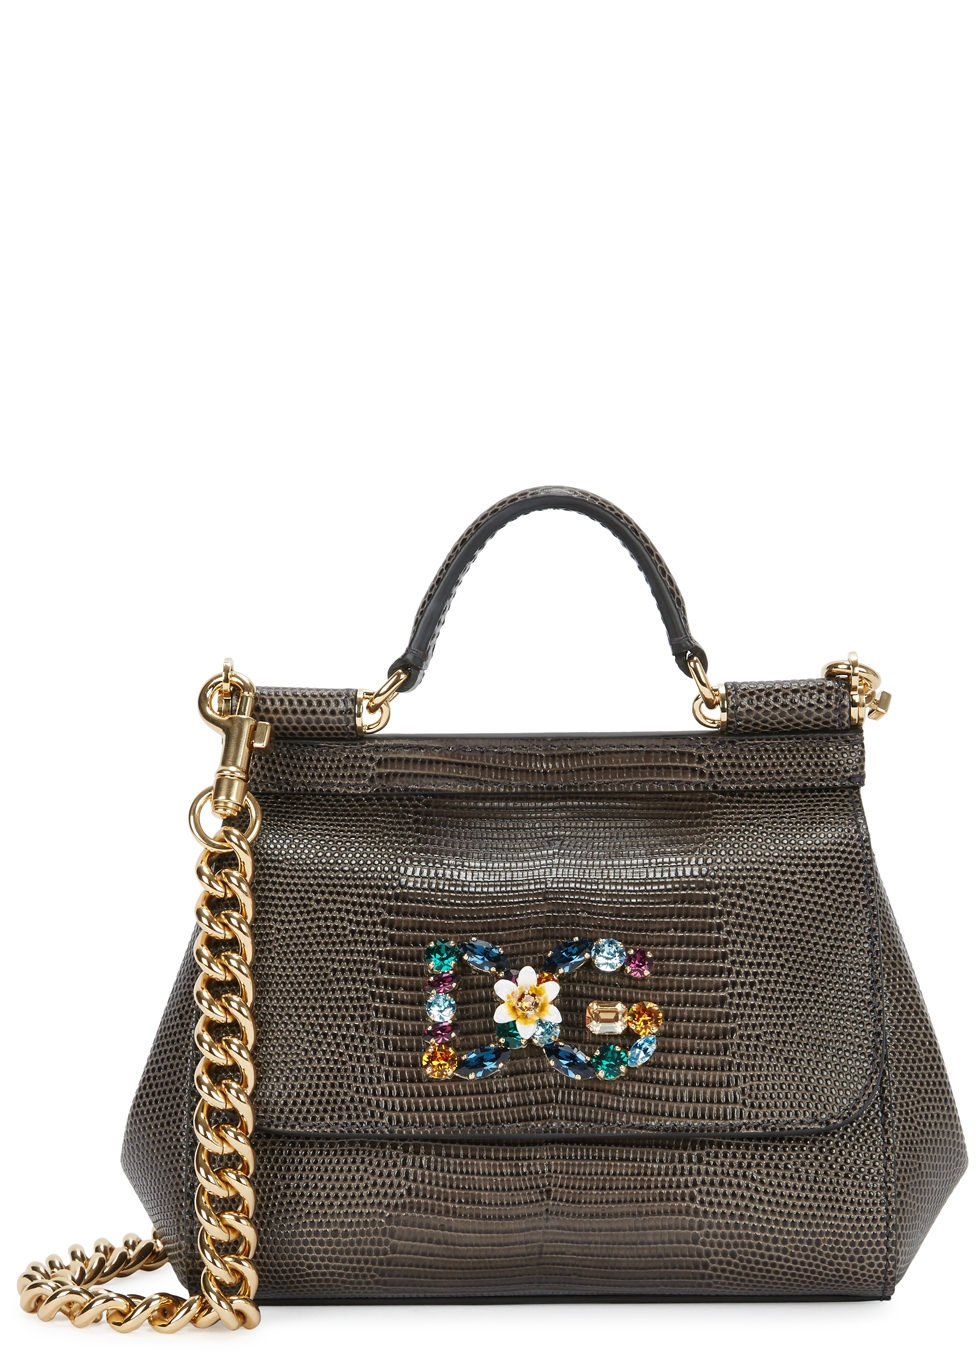 MISS SICILY SMALL IGUNA-EFFECT LEATHER TOTE